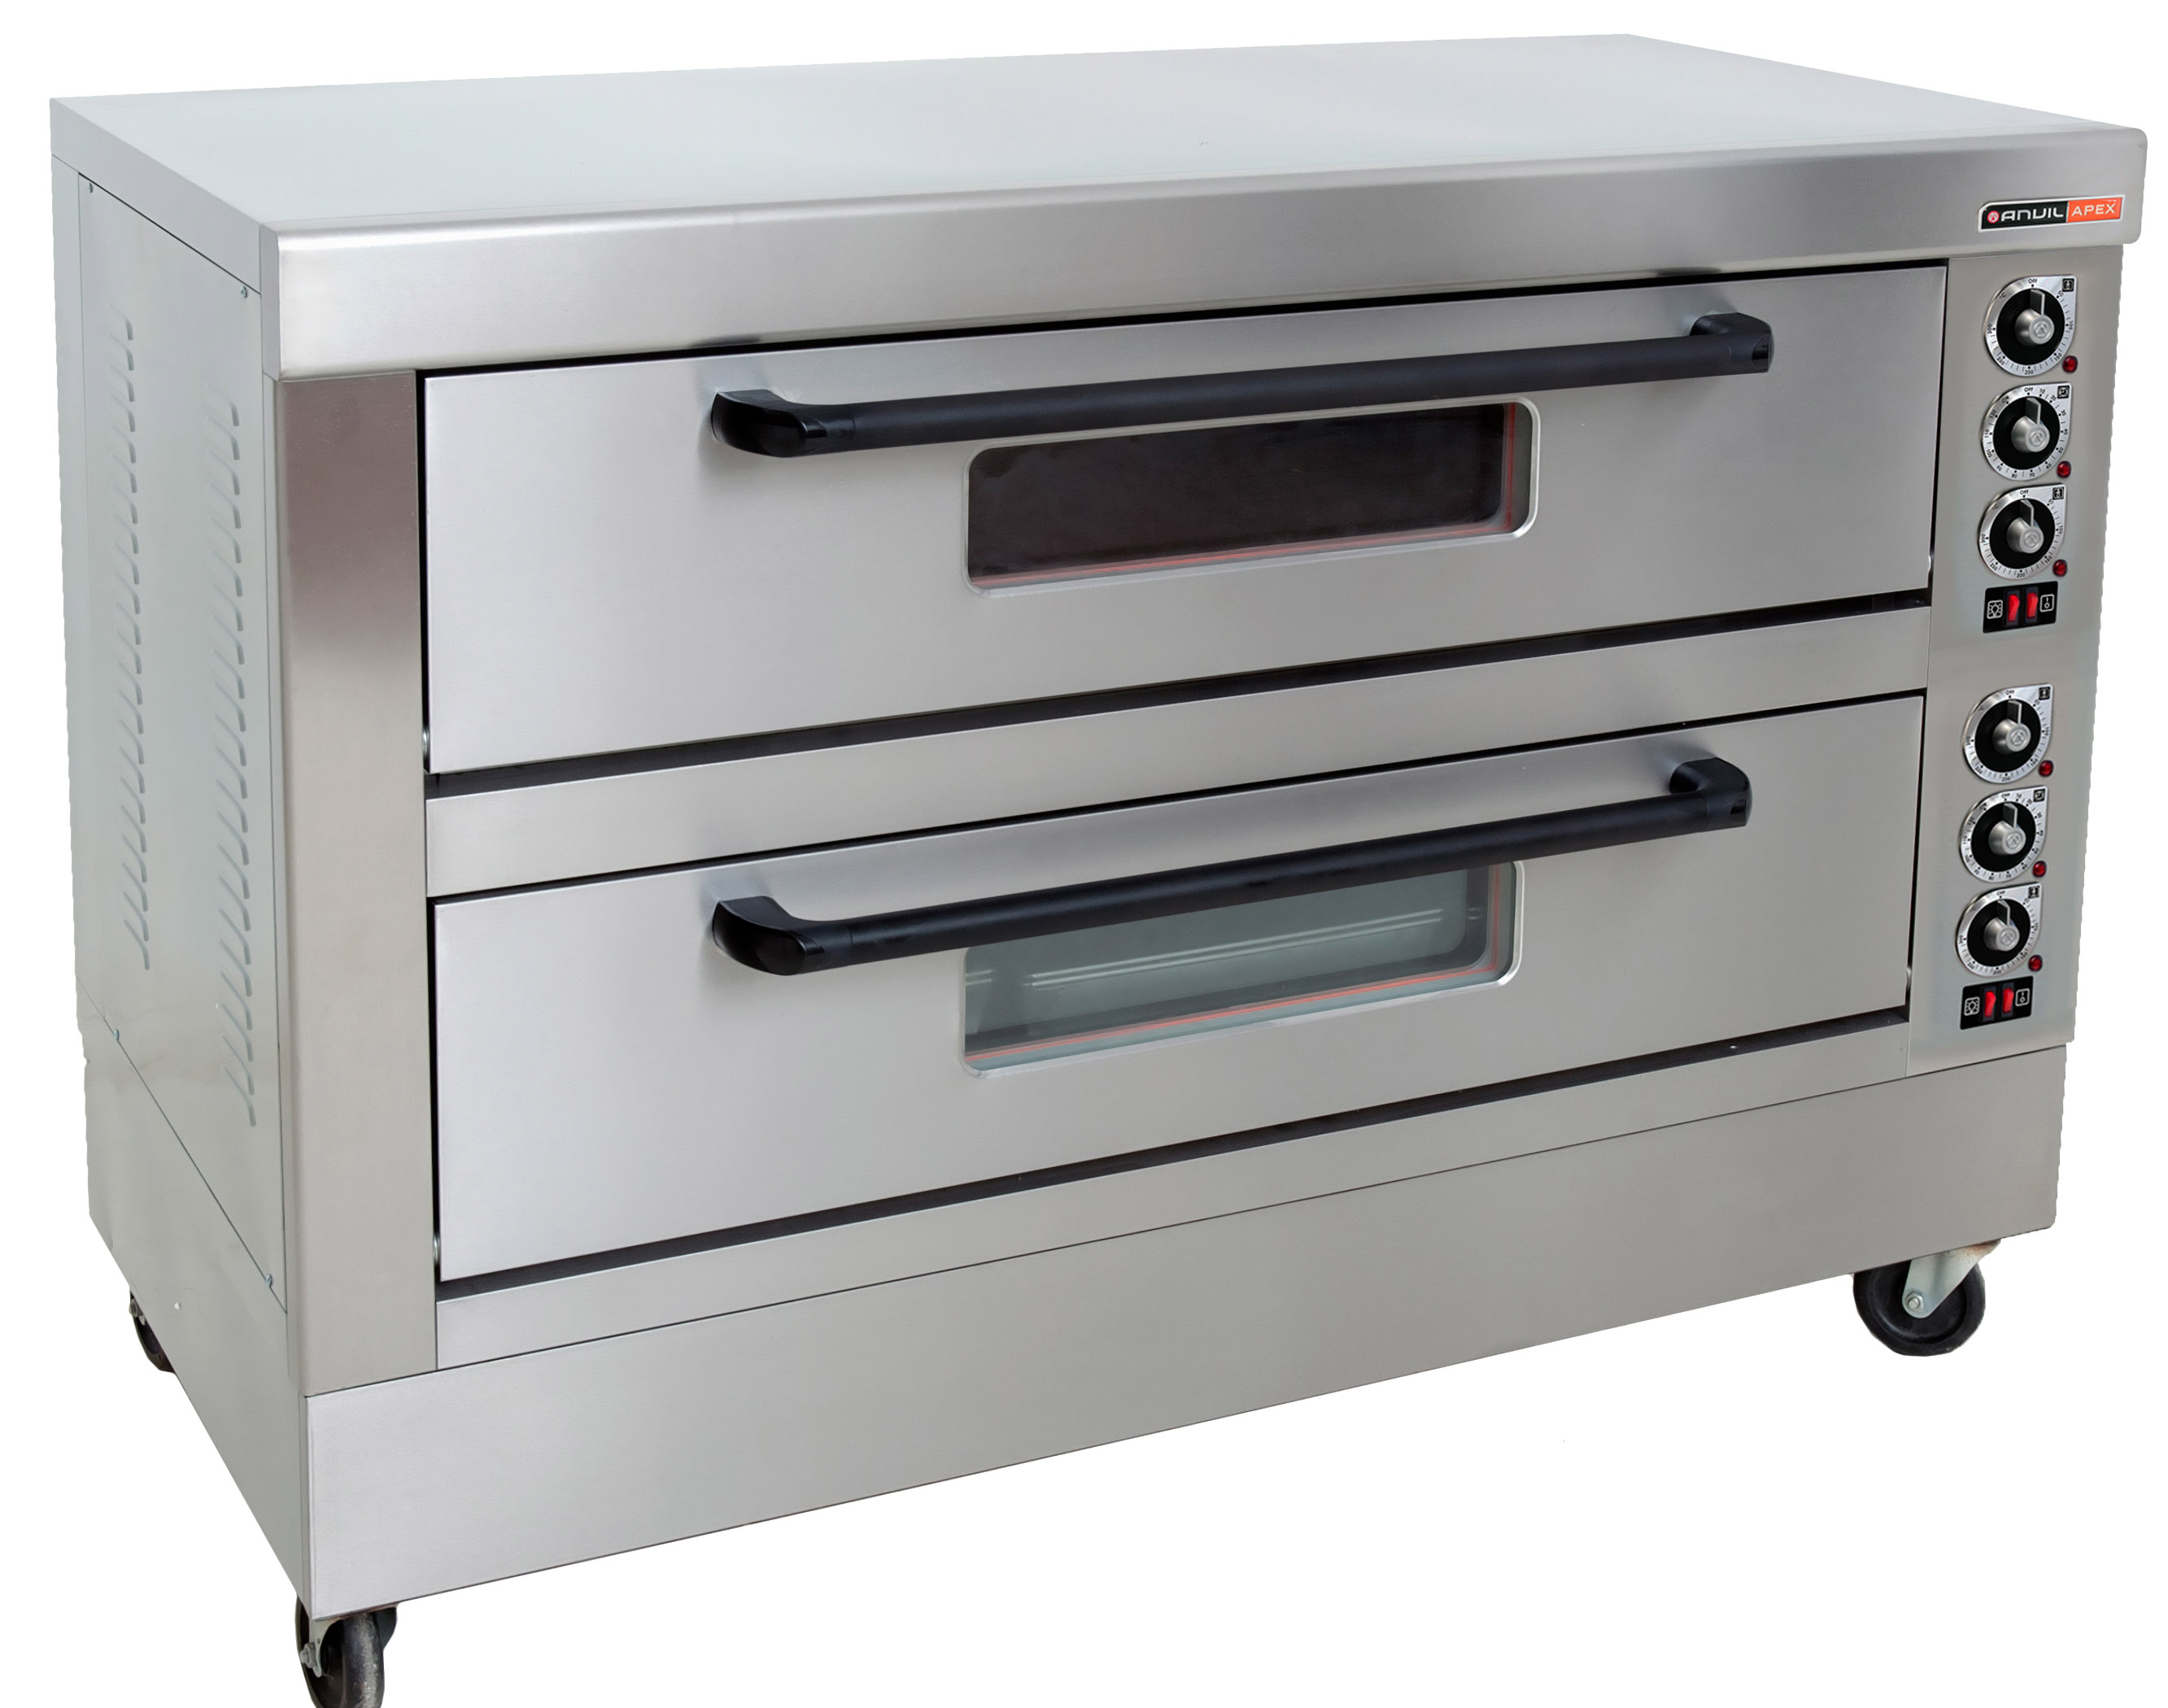 DECK OVEN ANVIL - 4 TRAY - DOUBLE DECK (3 PHASE - 50Hz)